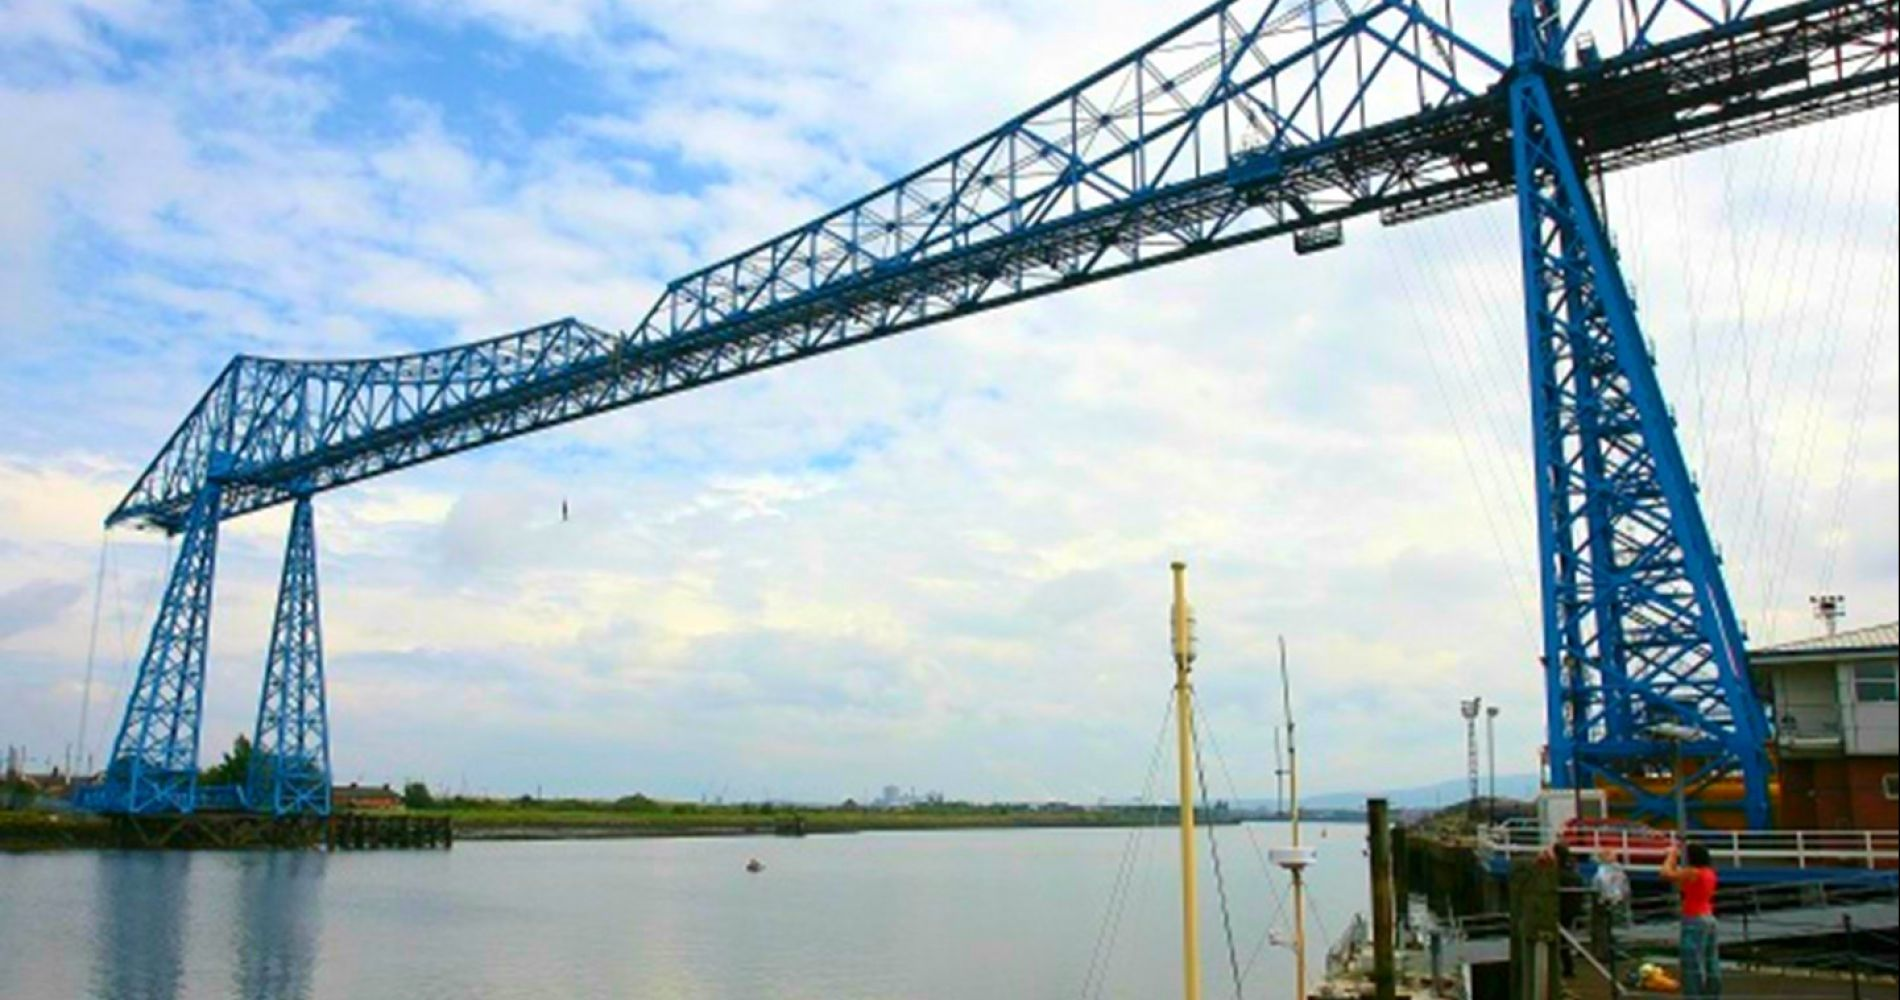 Tees Transporter Bridge Bungee Jump